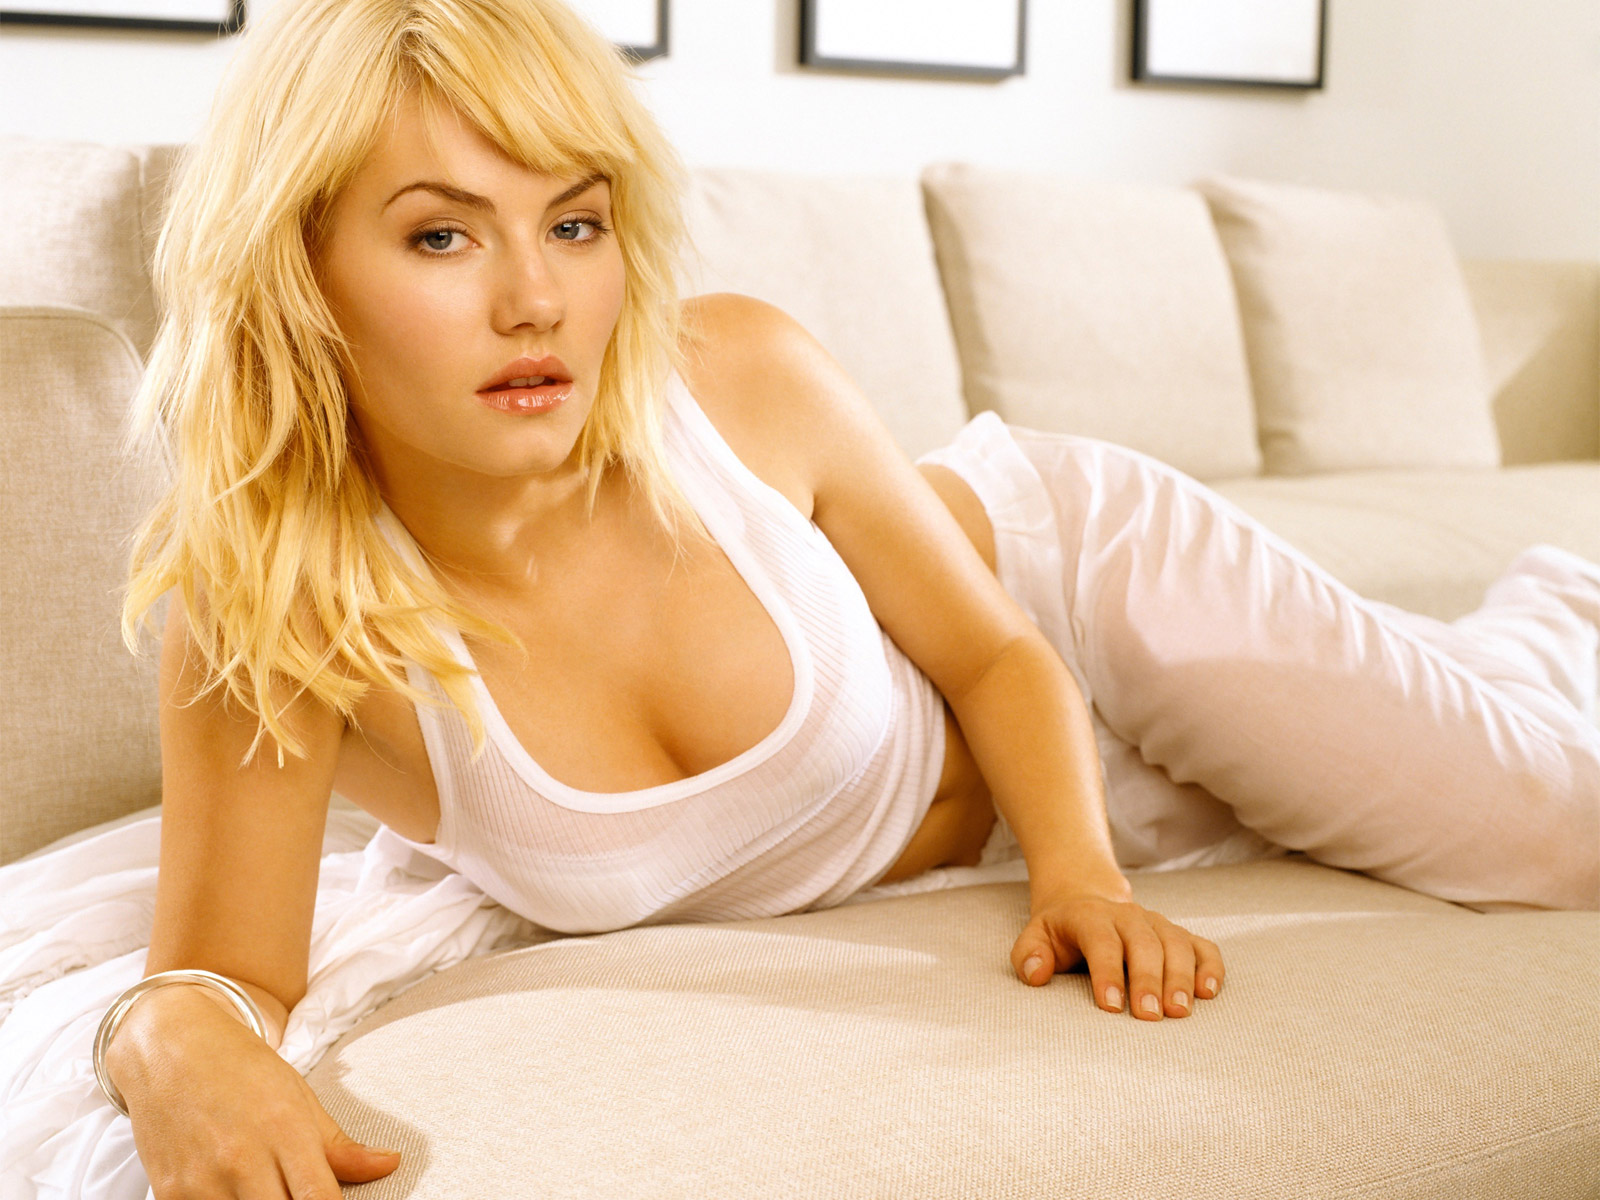 Elisha Cuthbert Hd Wallpapers: Elisha Cuthbert Wallpapers 1600x1200